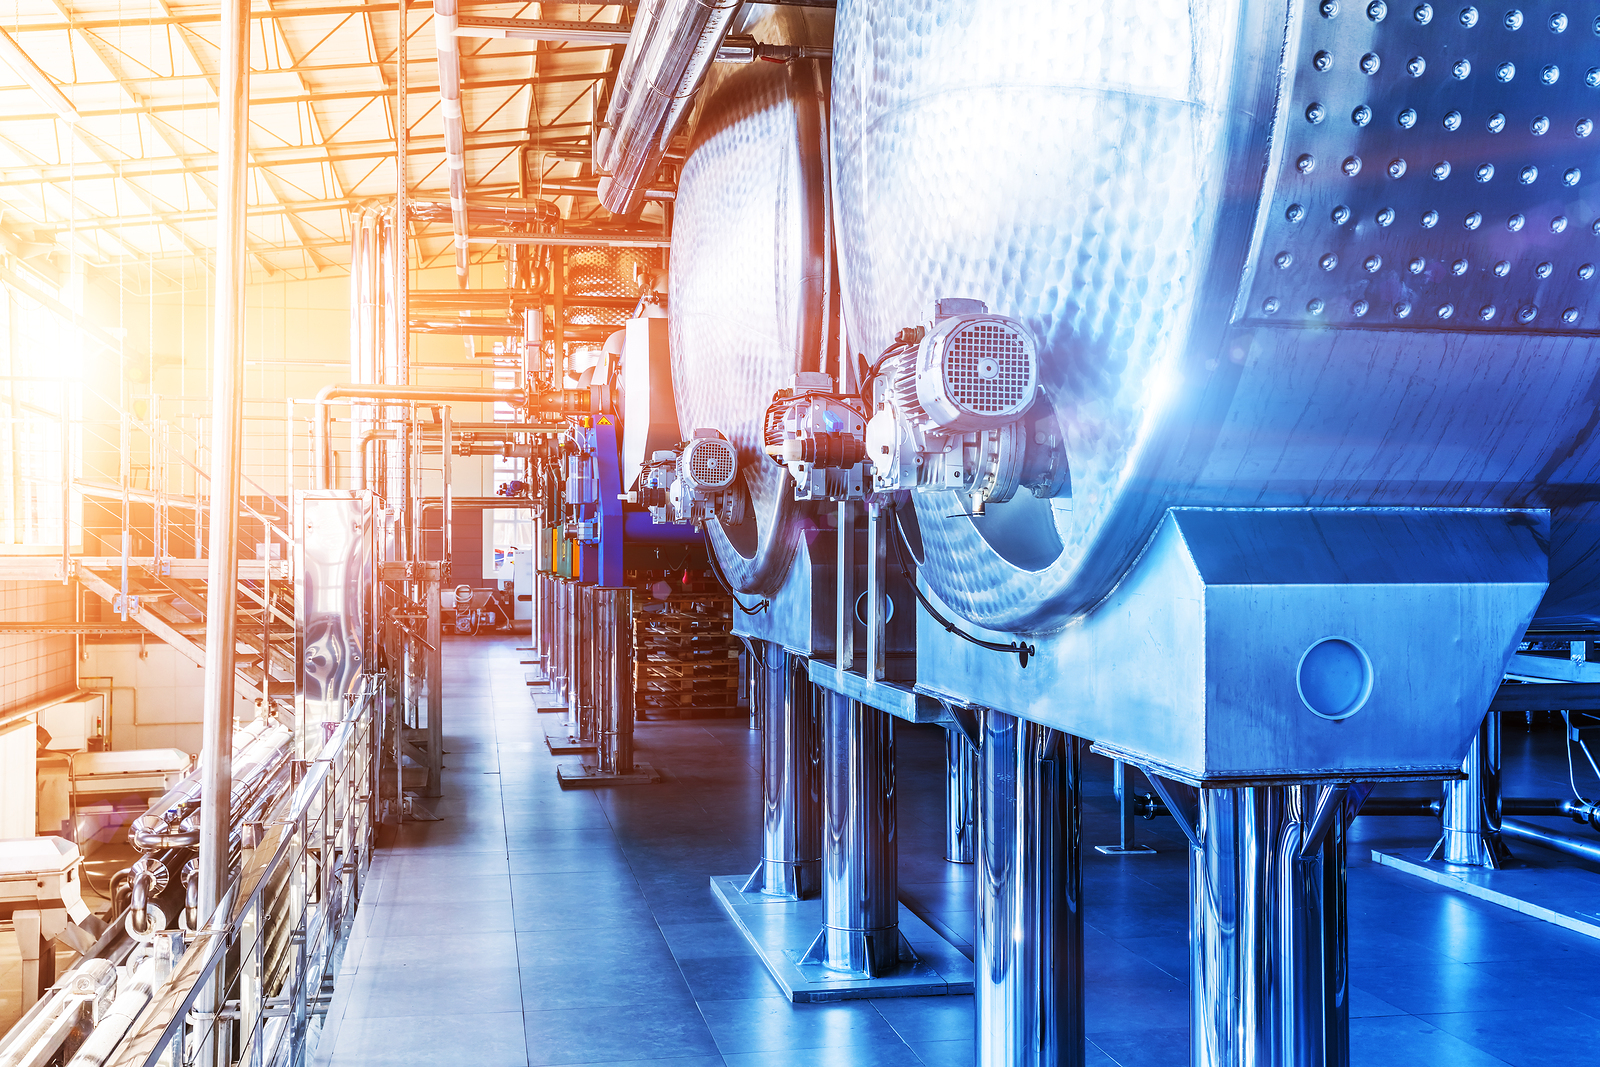 Industries that Can Benefit from Equipment Financing